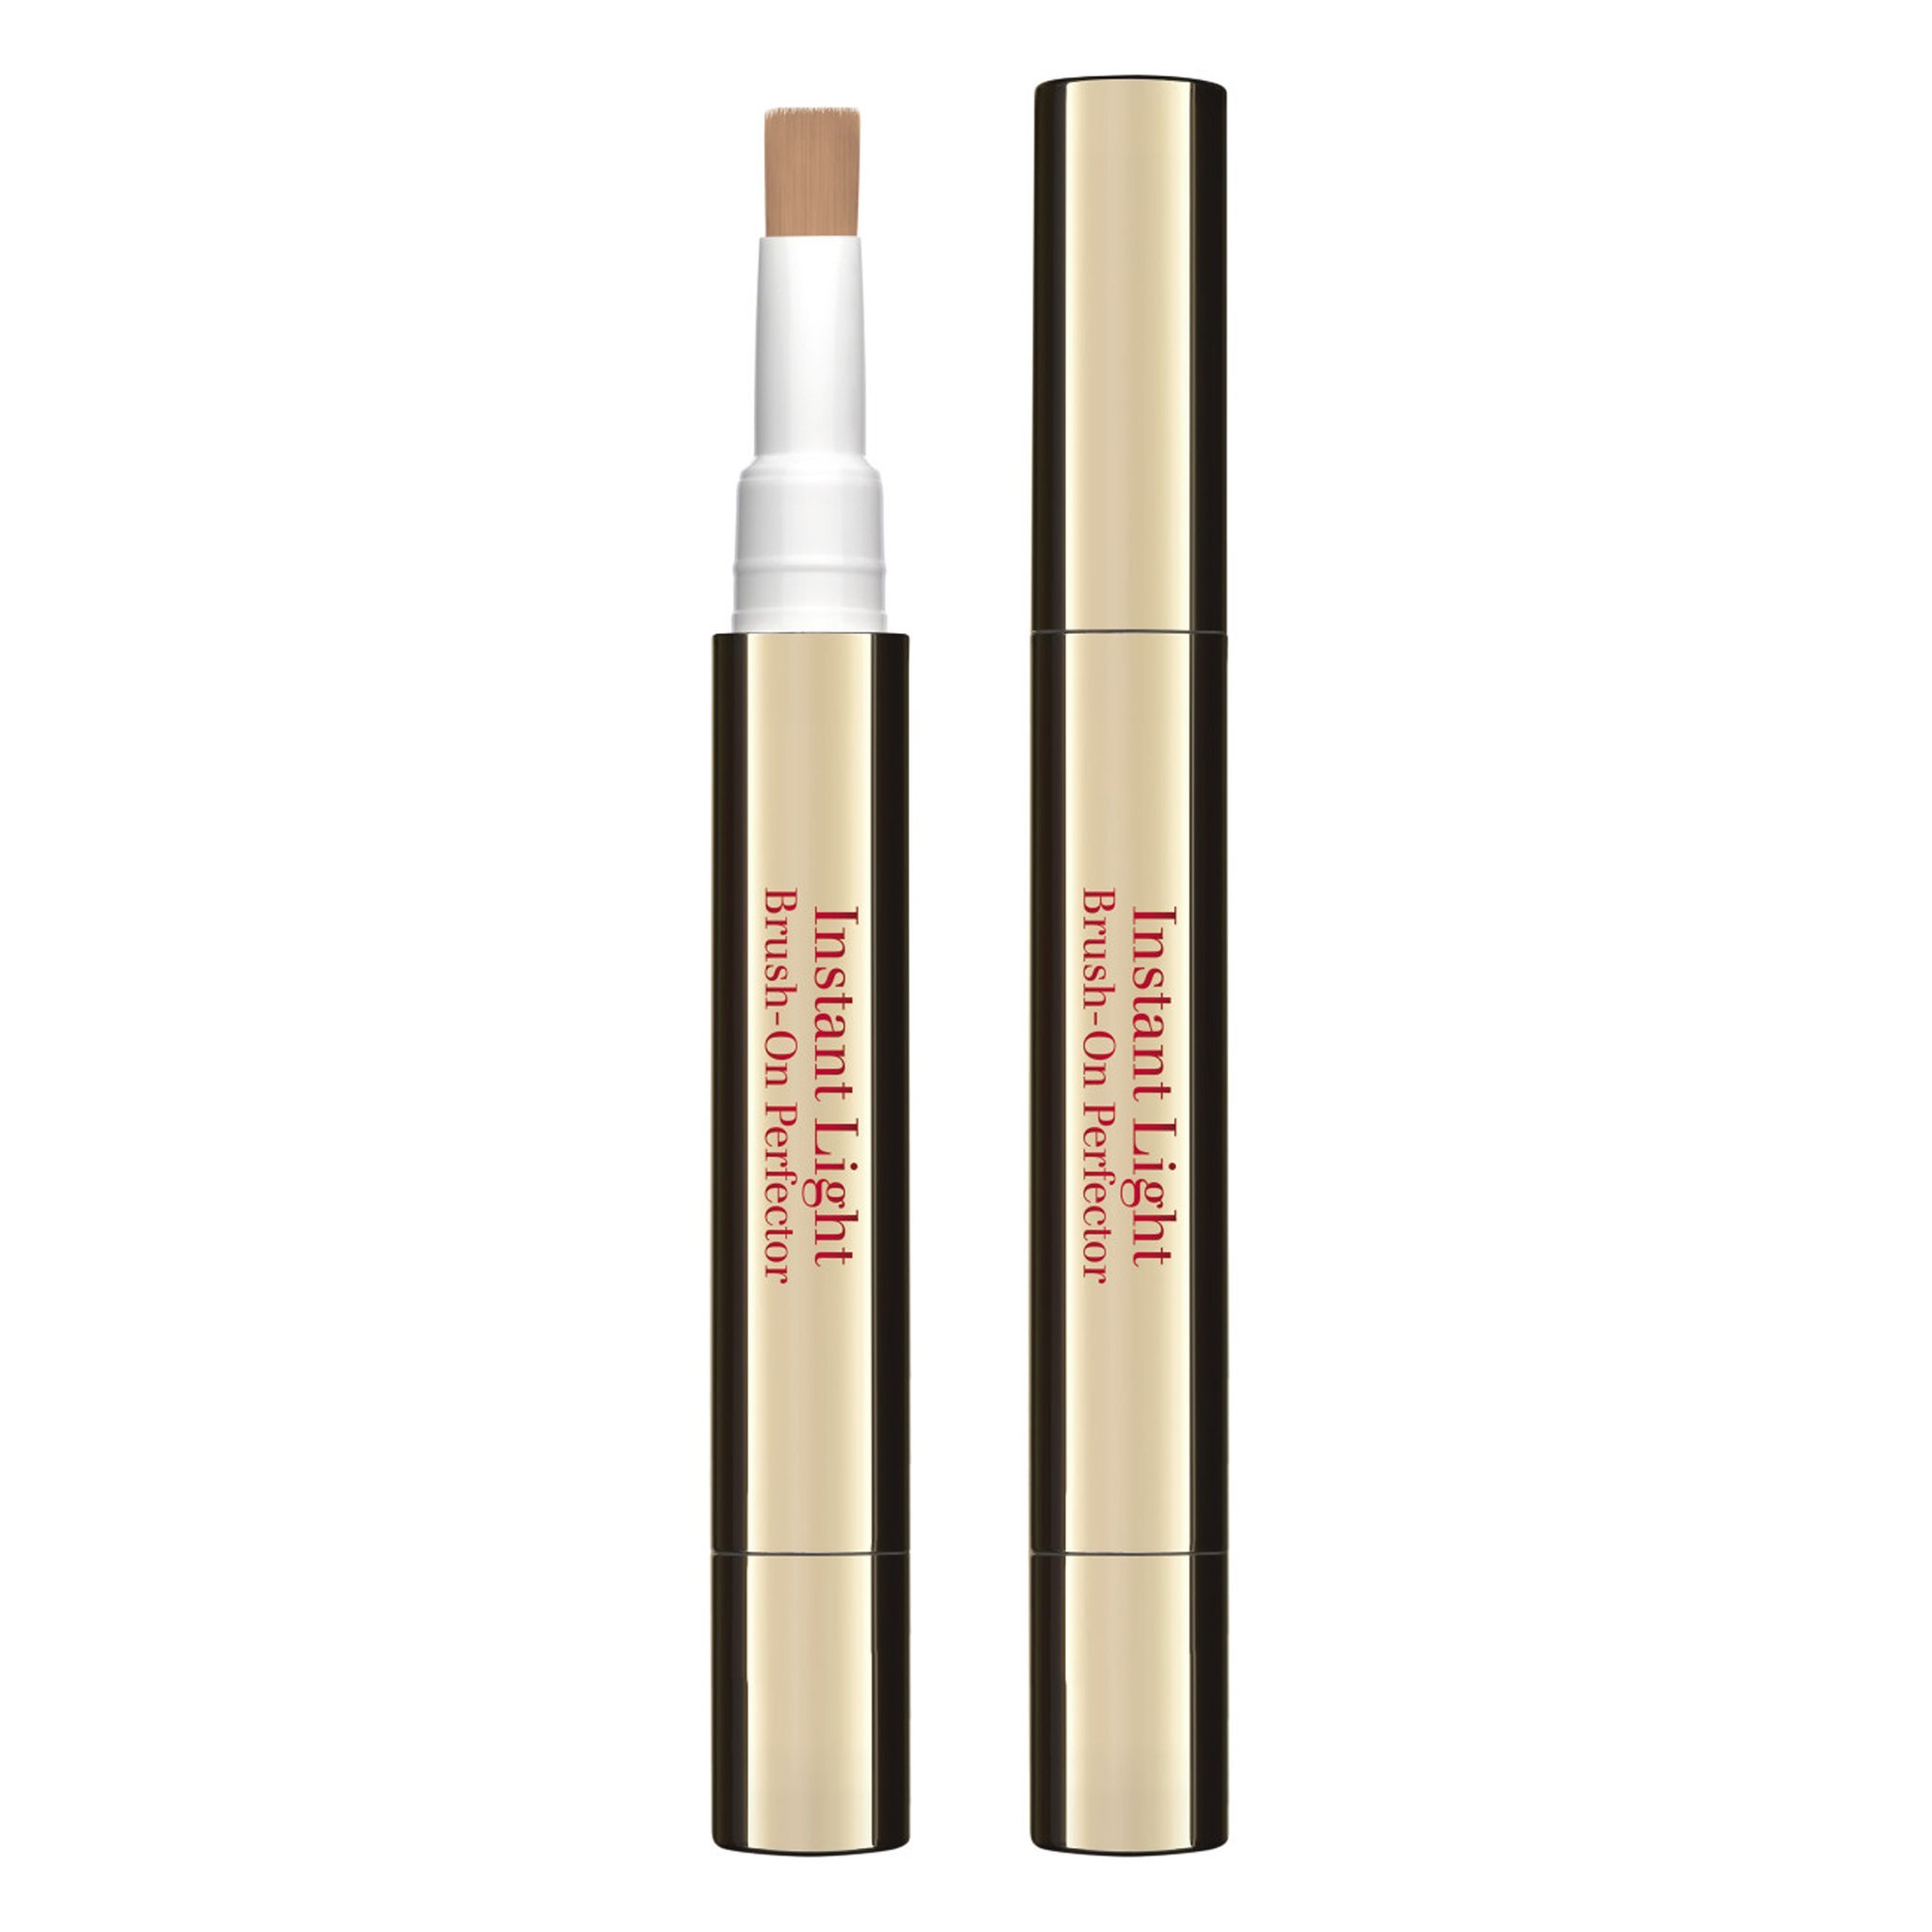 Amazon.com : Clarins Instant Concealer, No. 02 Pinky Beige, 0.5 Ounce : Beauty